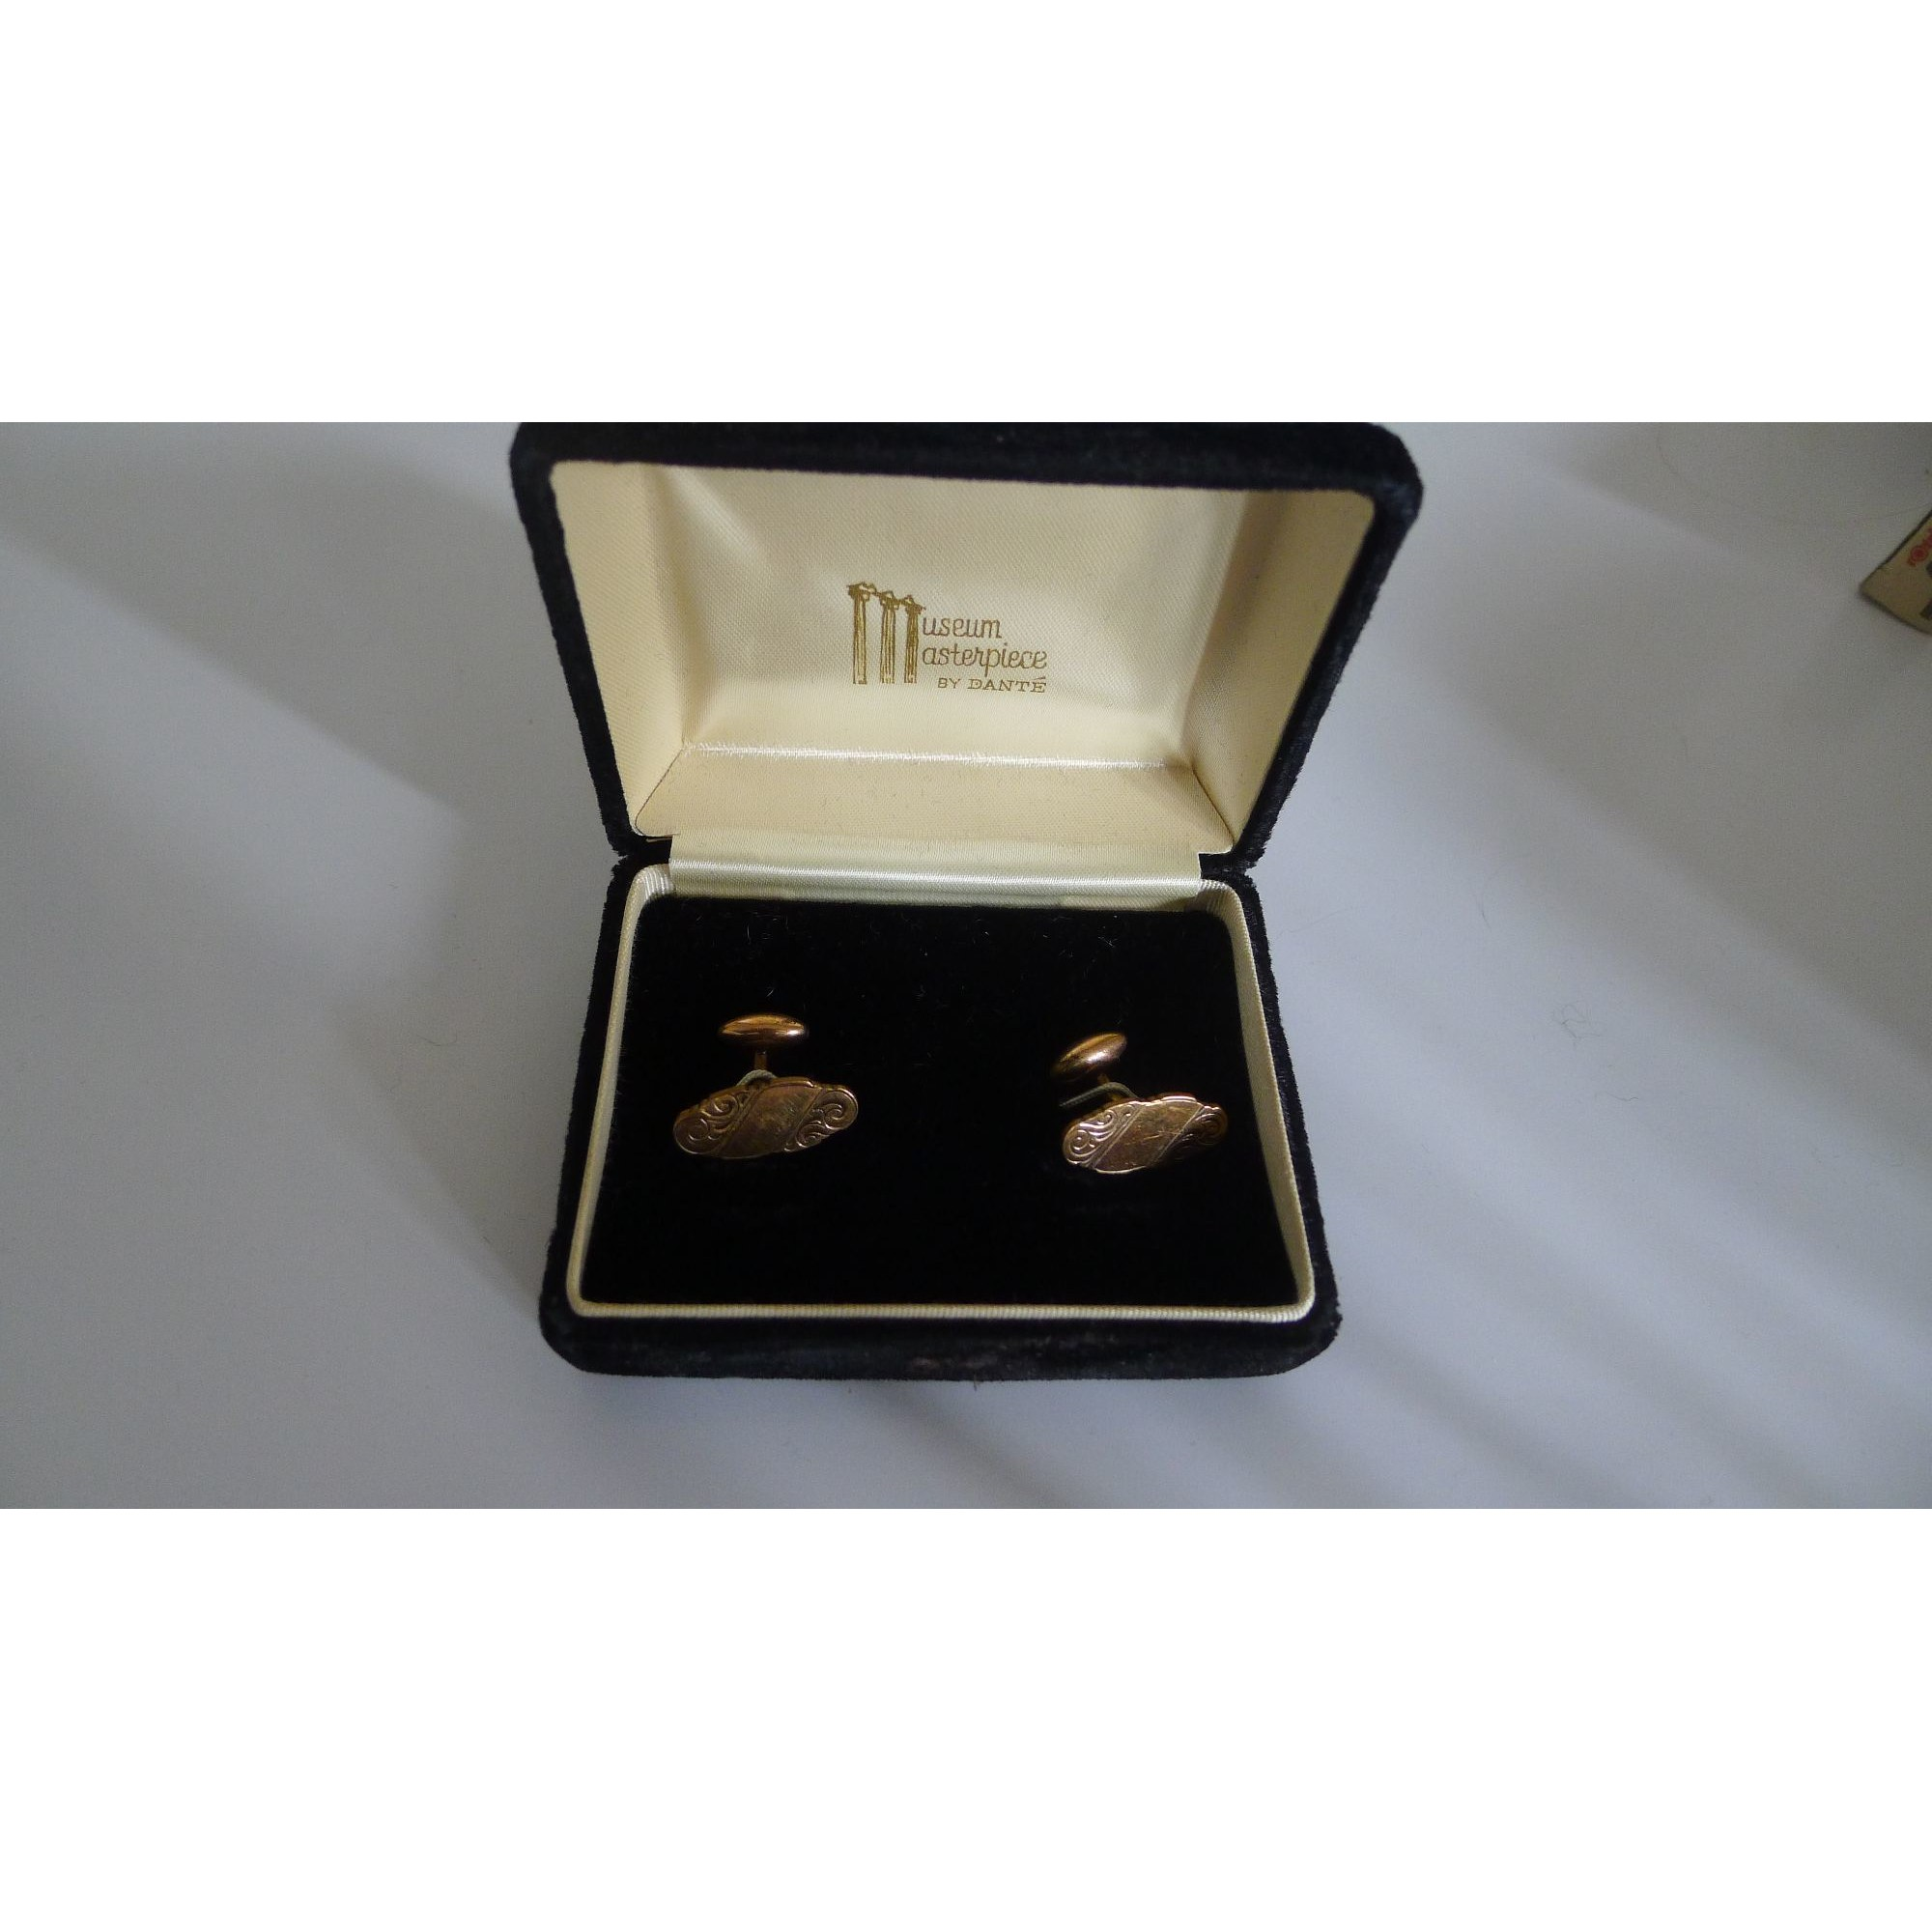 Cufflinks MUSEUM MASTERPIECE BY DANTÉ Golden, bronze, copper